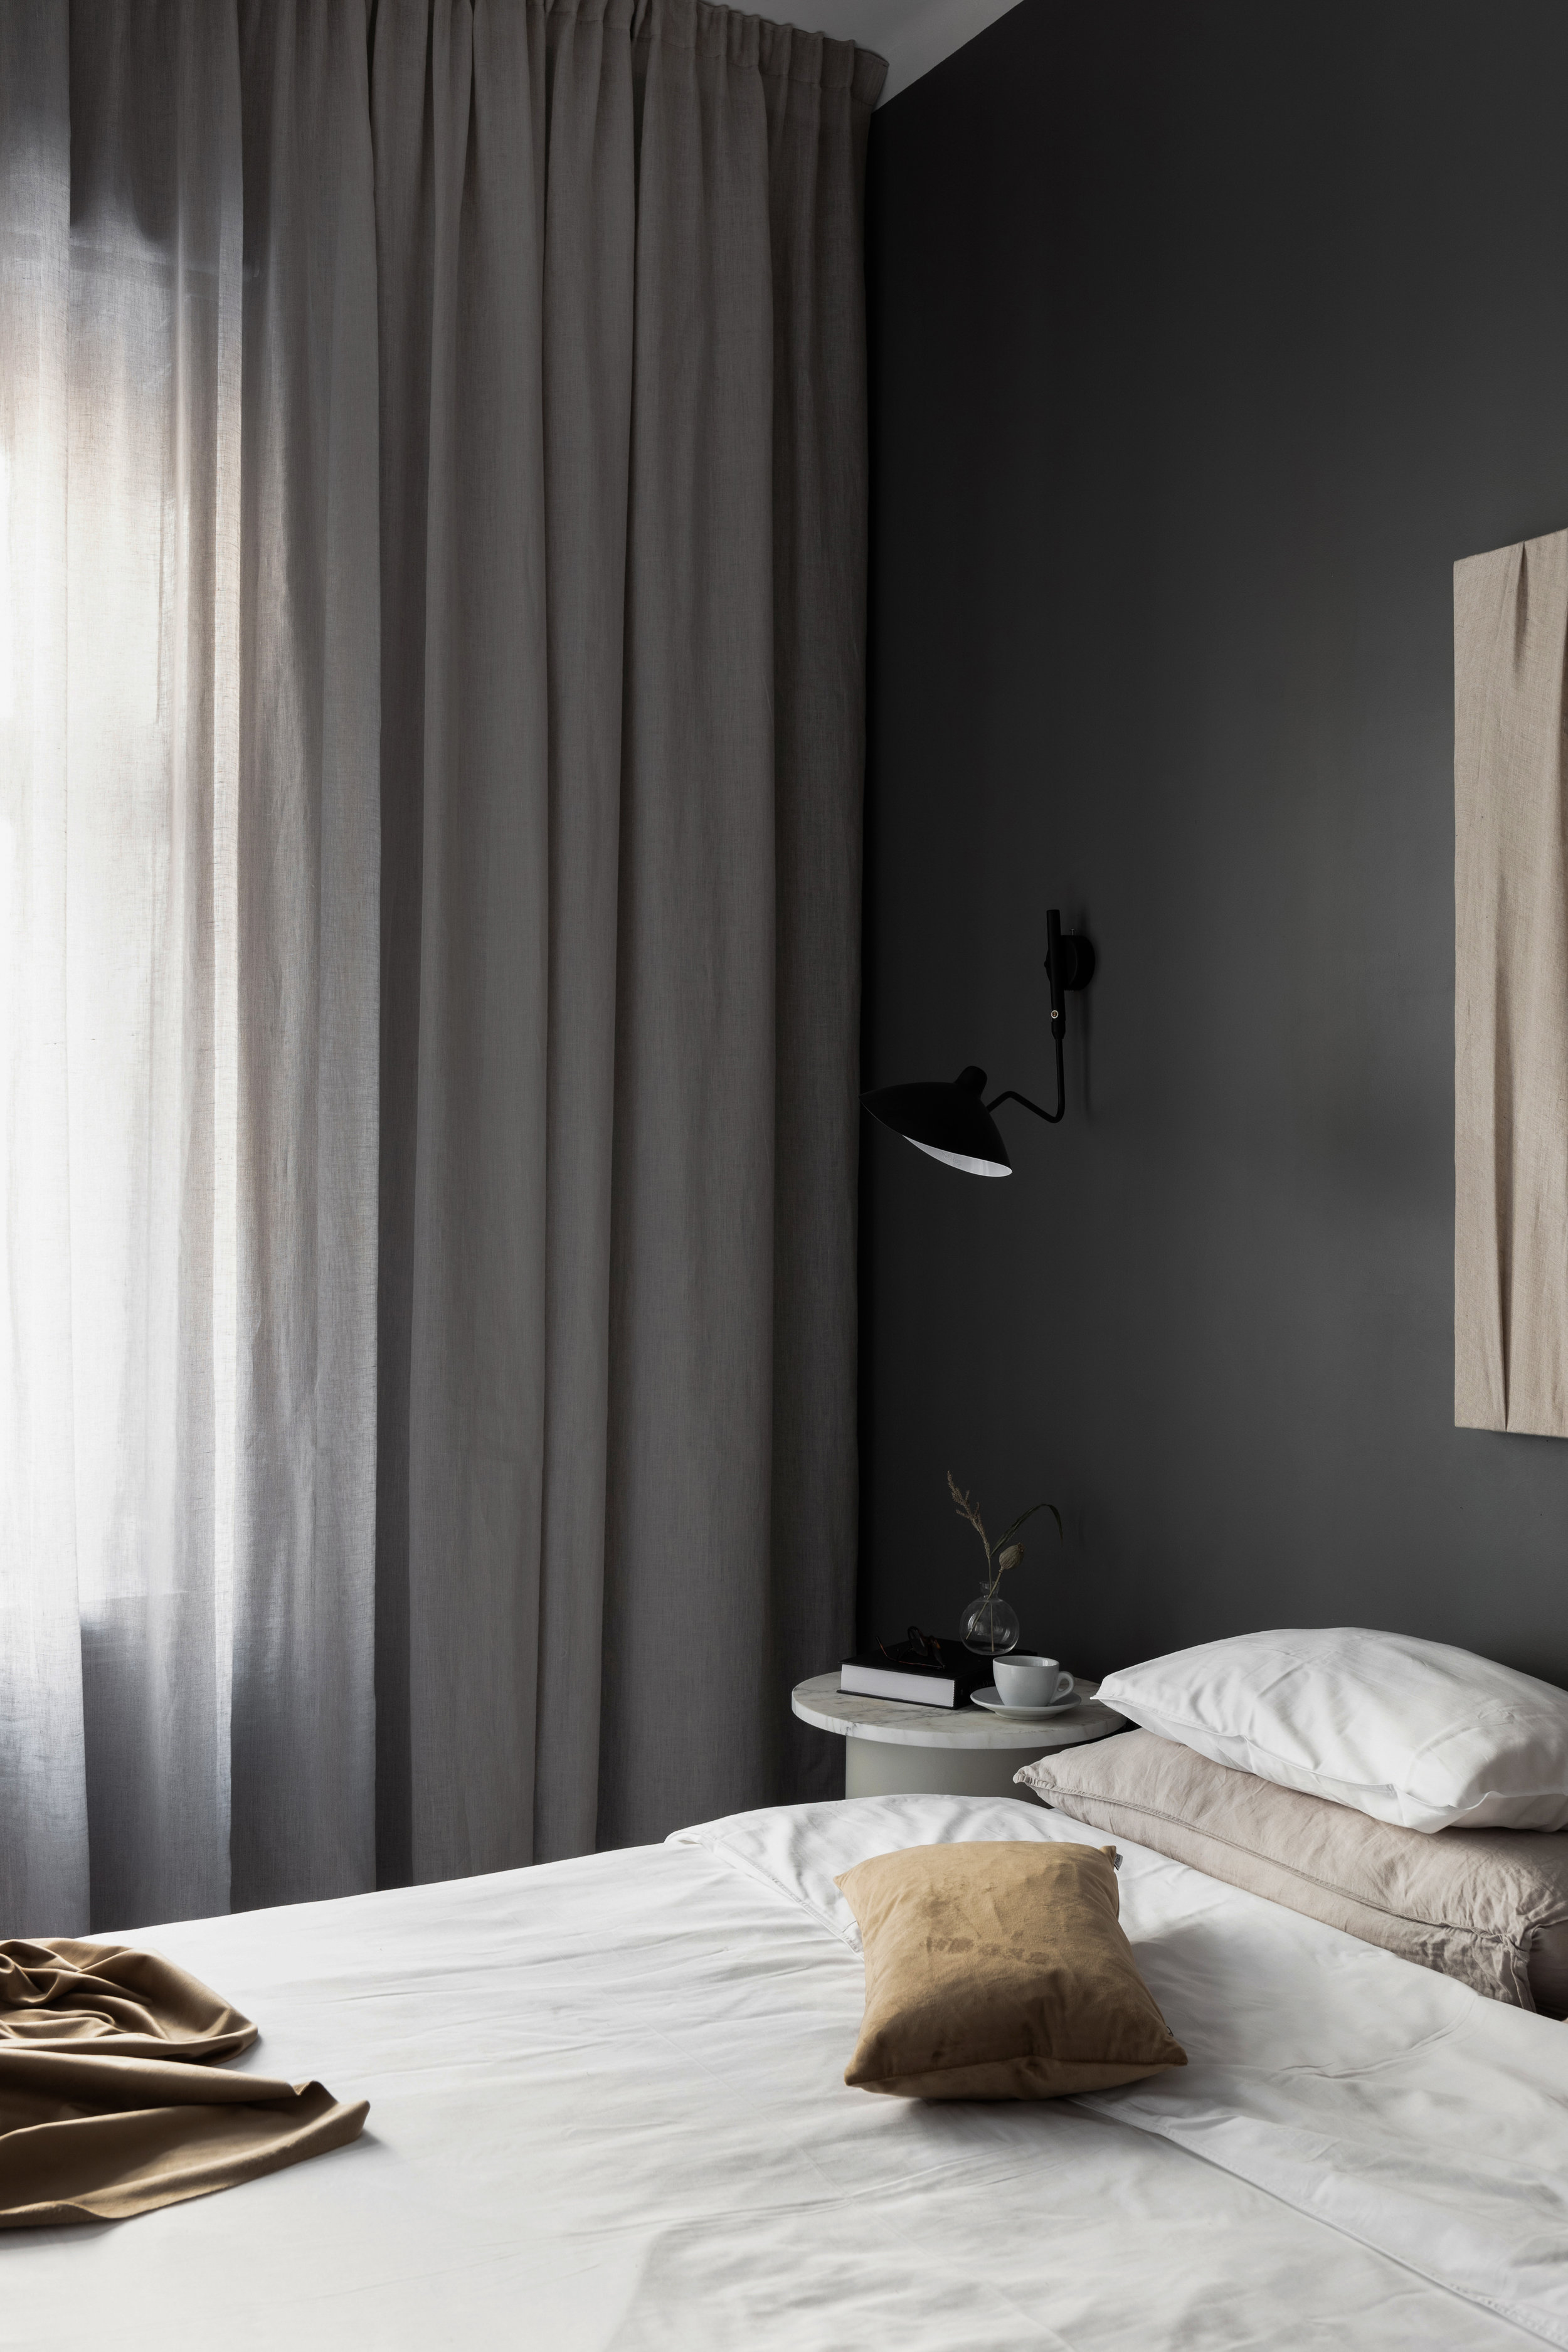 Gotain Curtains.  Styling and interior design, photo by Jesper Florbrant.